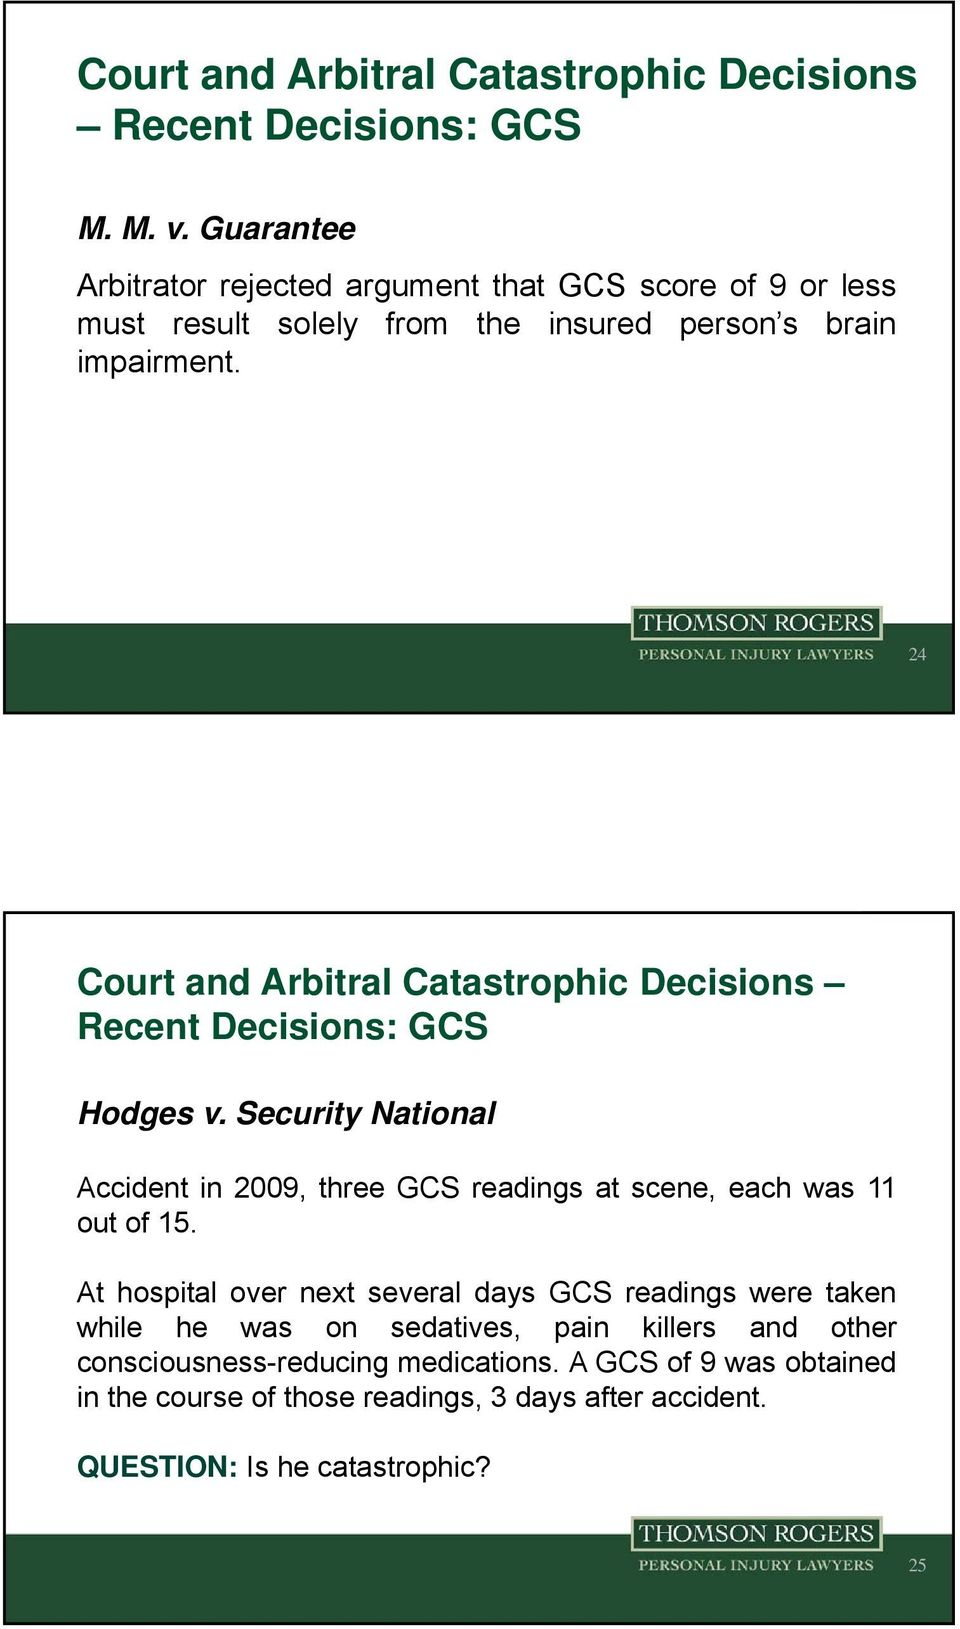 24 Recent Decisions: GCS Hodges v. Security National Accident in 2009, three GCS readings at scene, each was 11 out of 15.